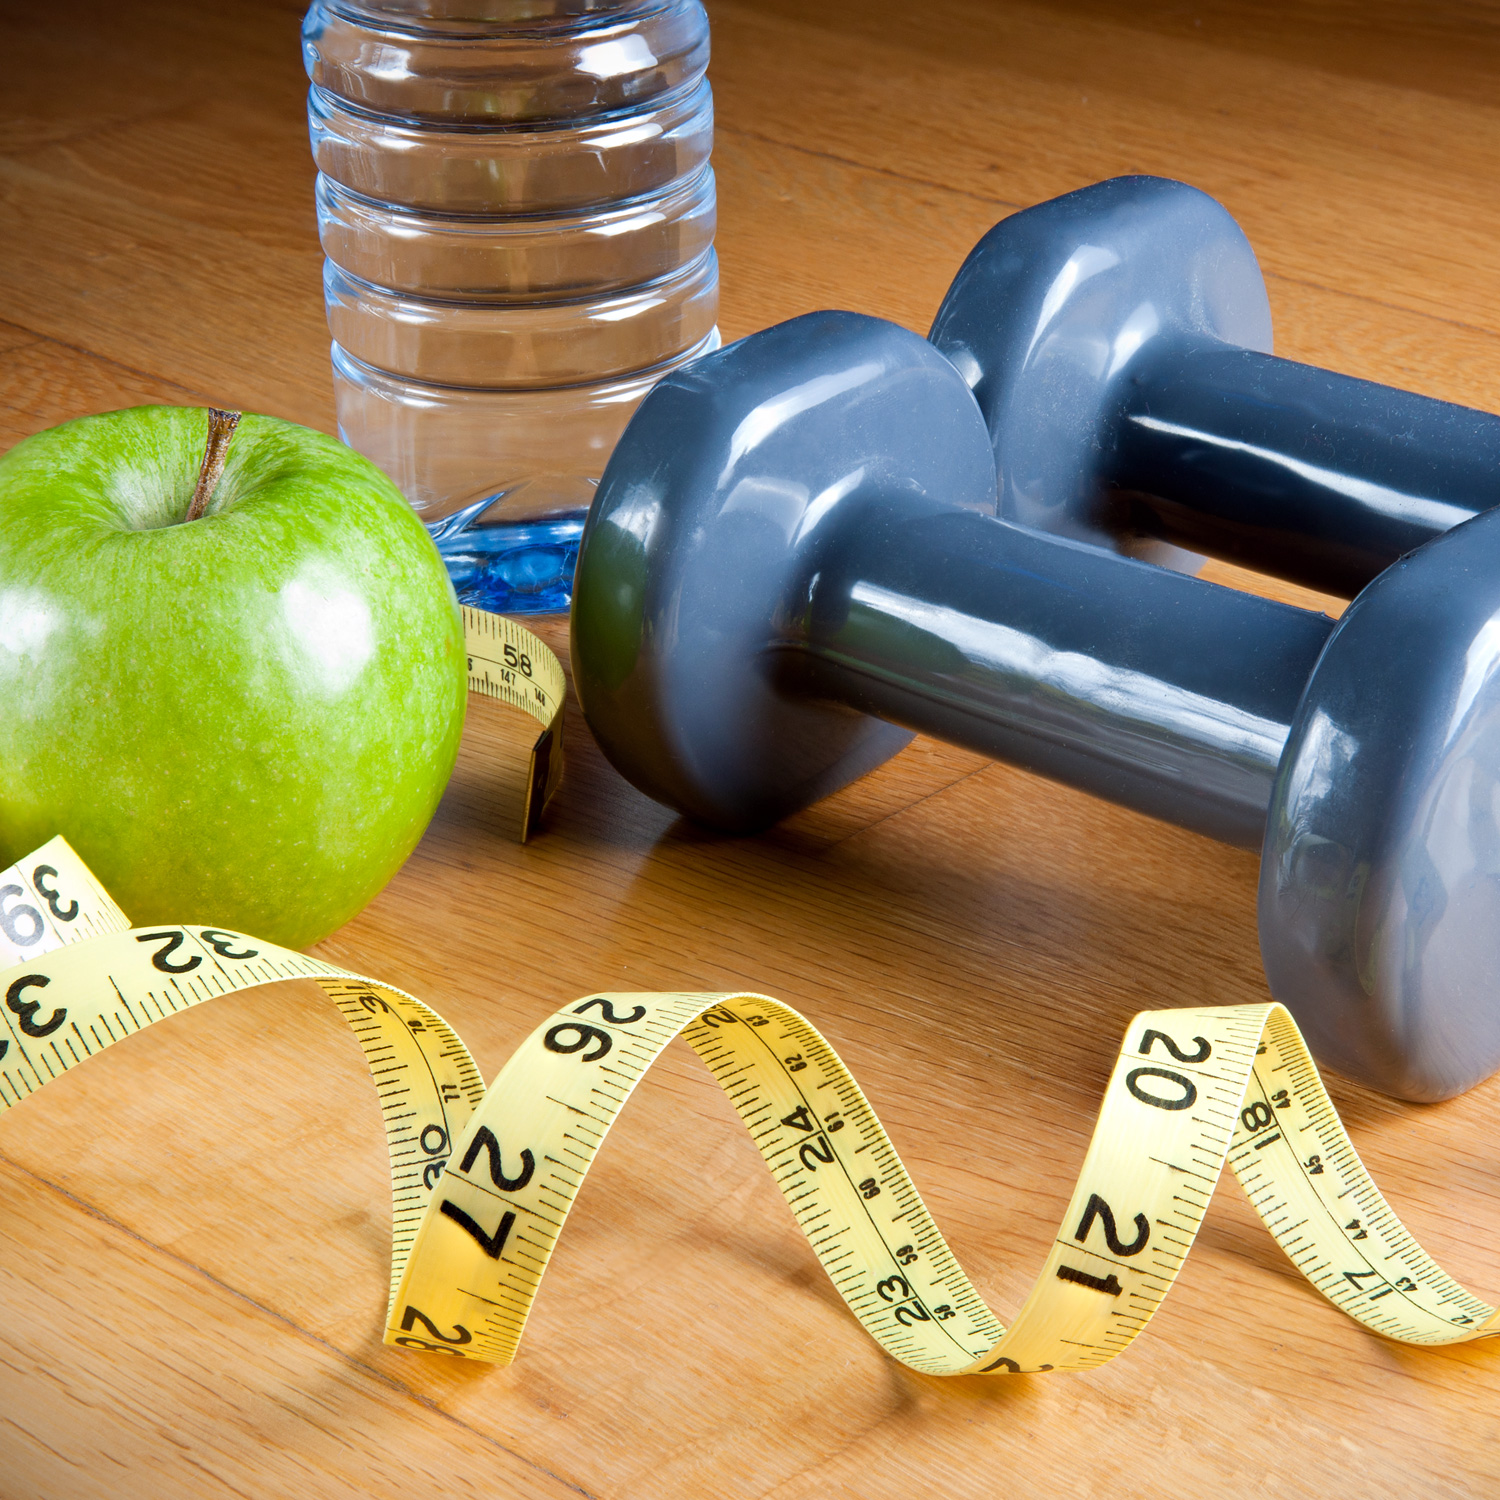 Verzehrempfehlung l-carnitine benefits and weight loss picture 6